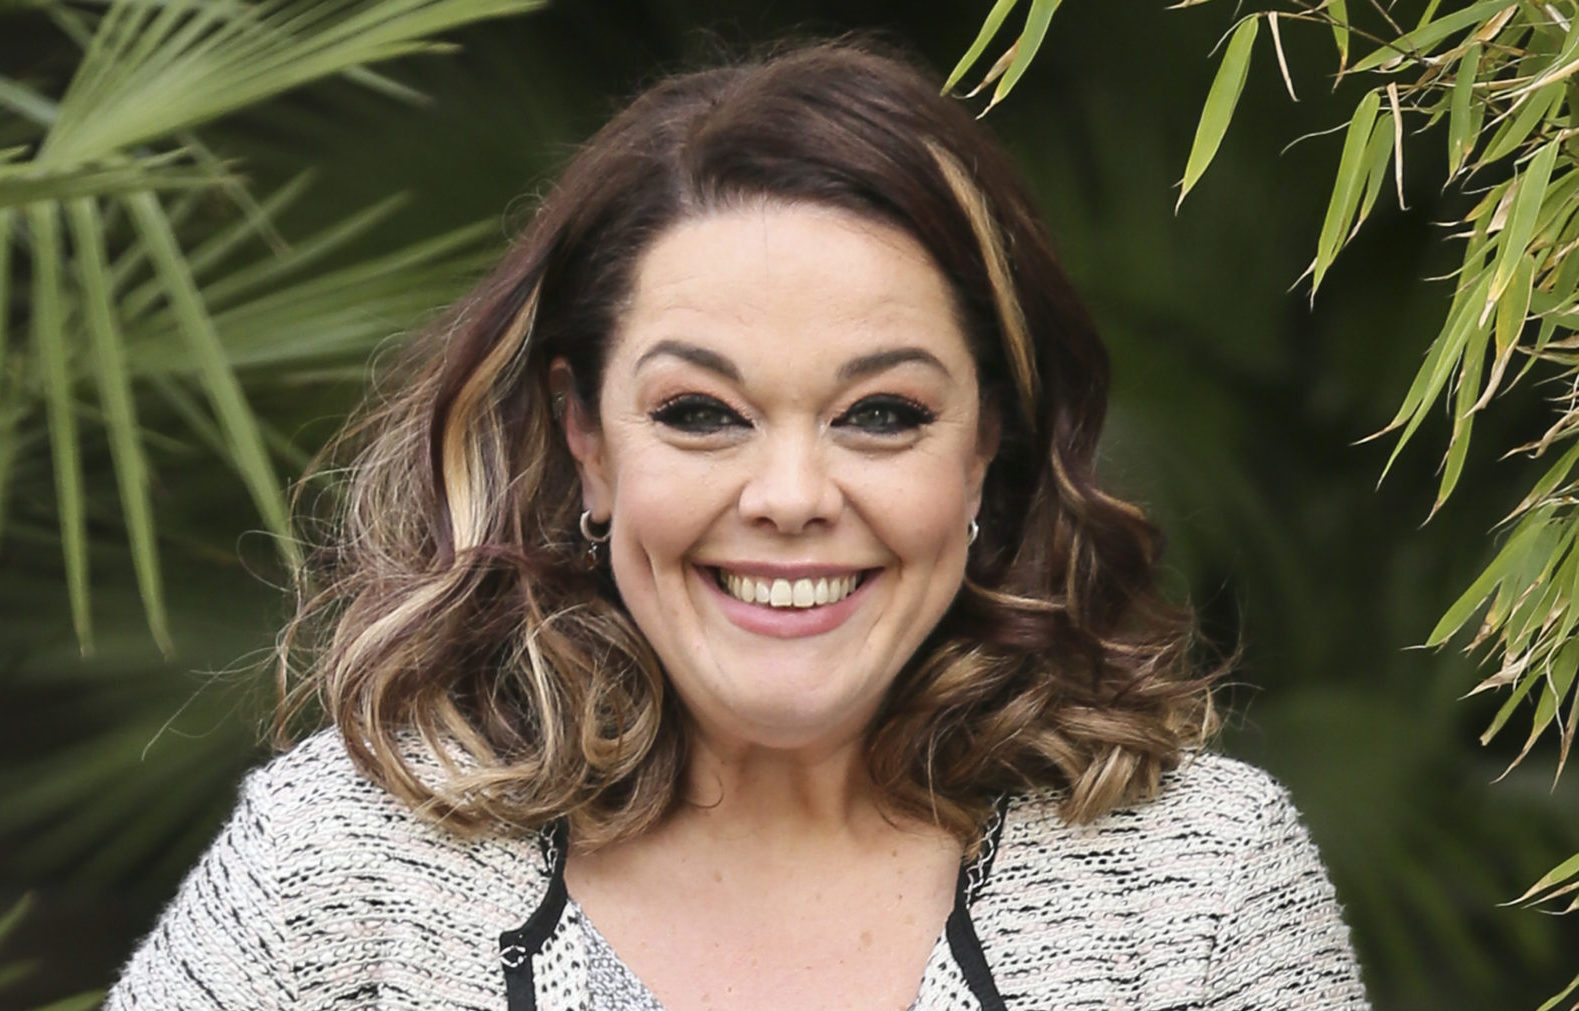 Emmerdale's Lisa Riley posts throwback picture showing huge weight loss transformation